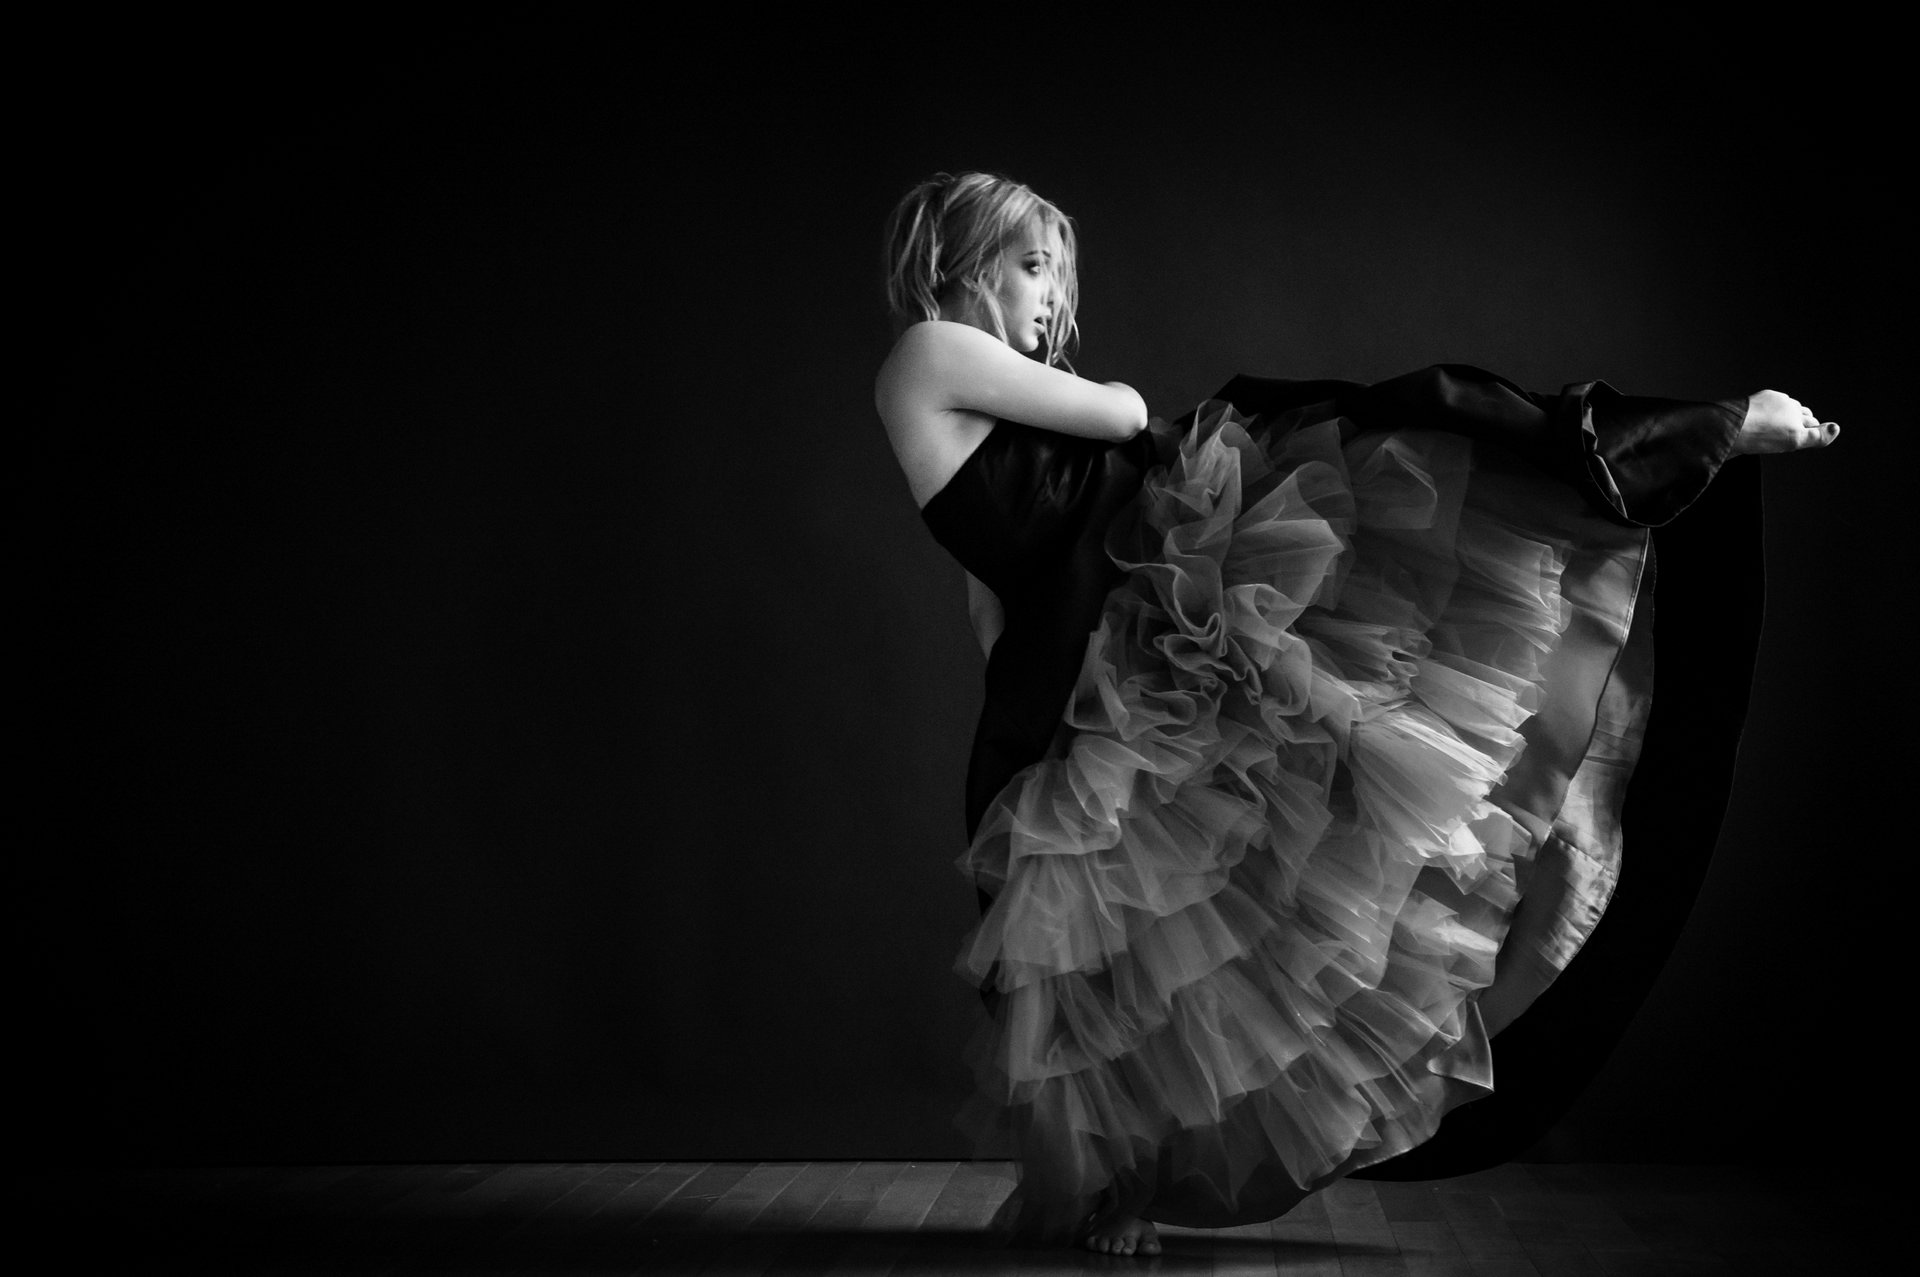 nEO_IMG_Xing Photography Soul of Dance - Haley-104-BW.jpg